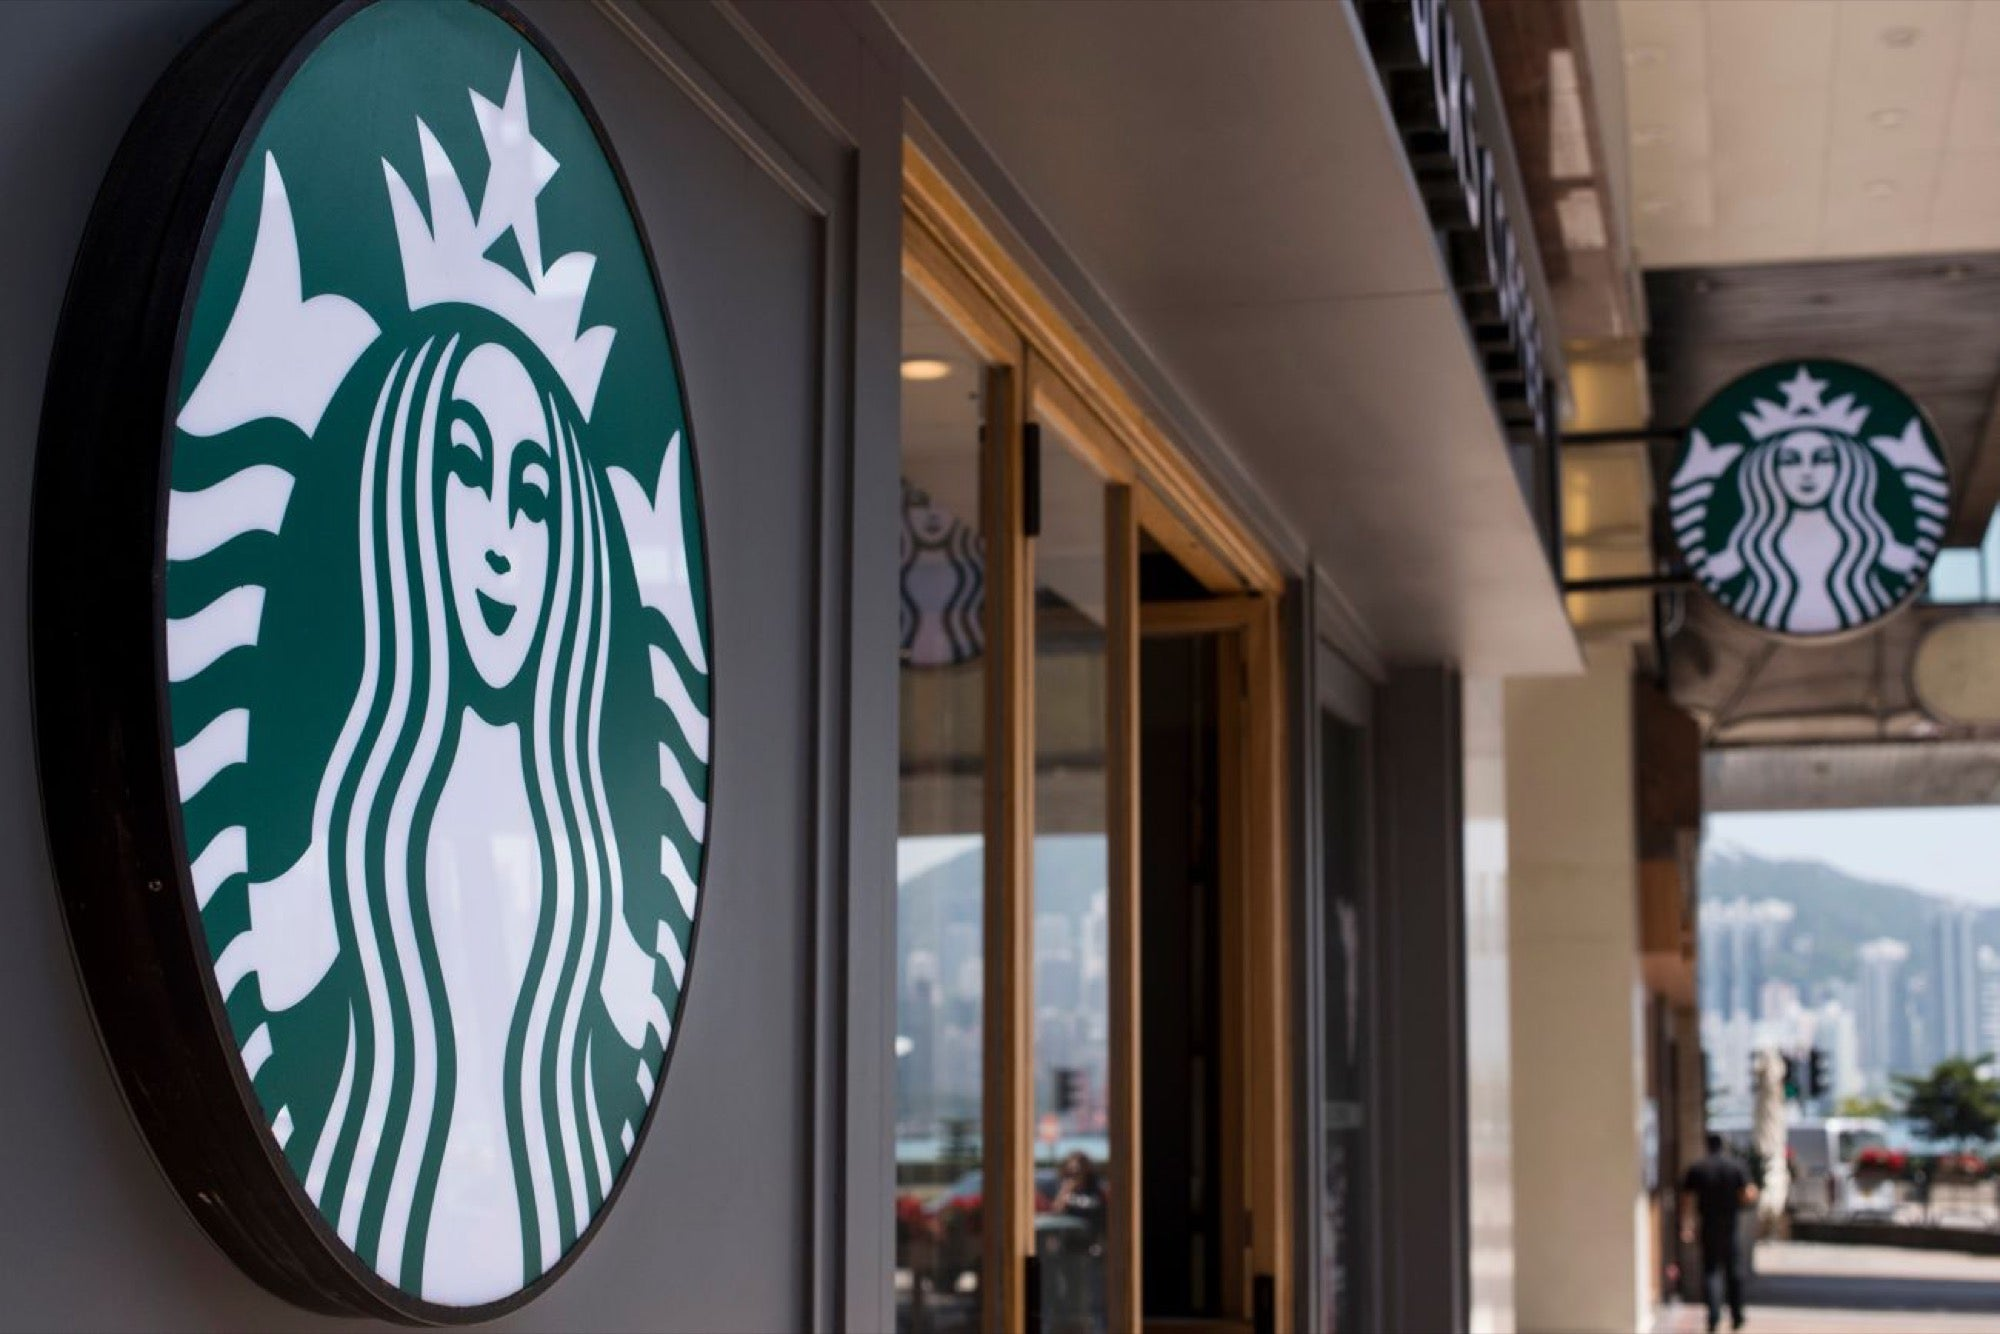 893d7d07fa You Can t Buy a Starbucks Franchise  Here s Why and What You Can Do Instead